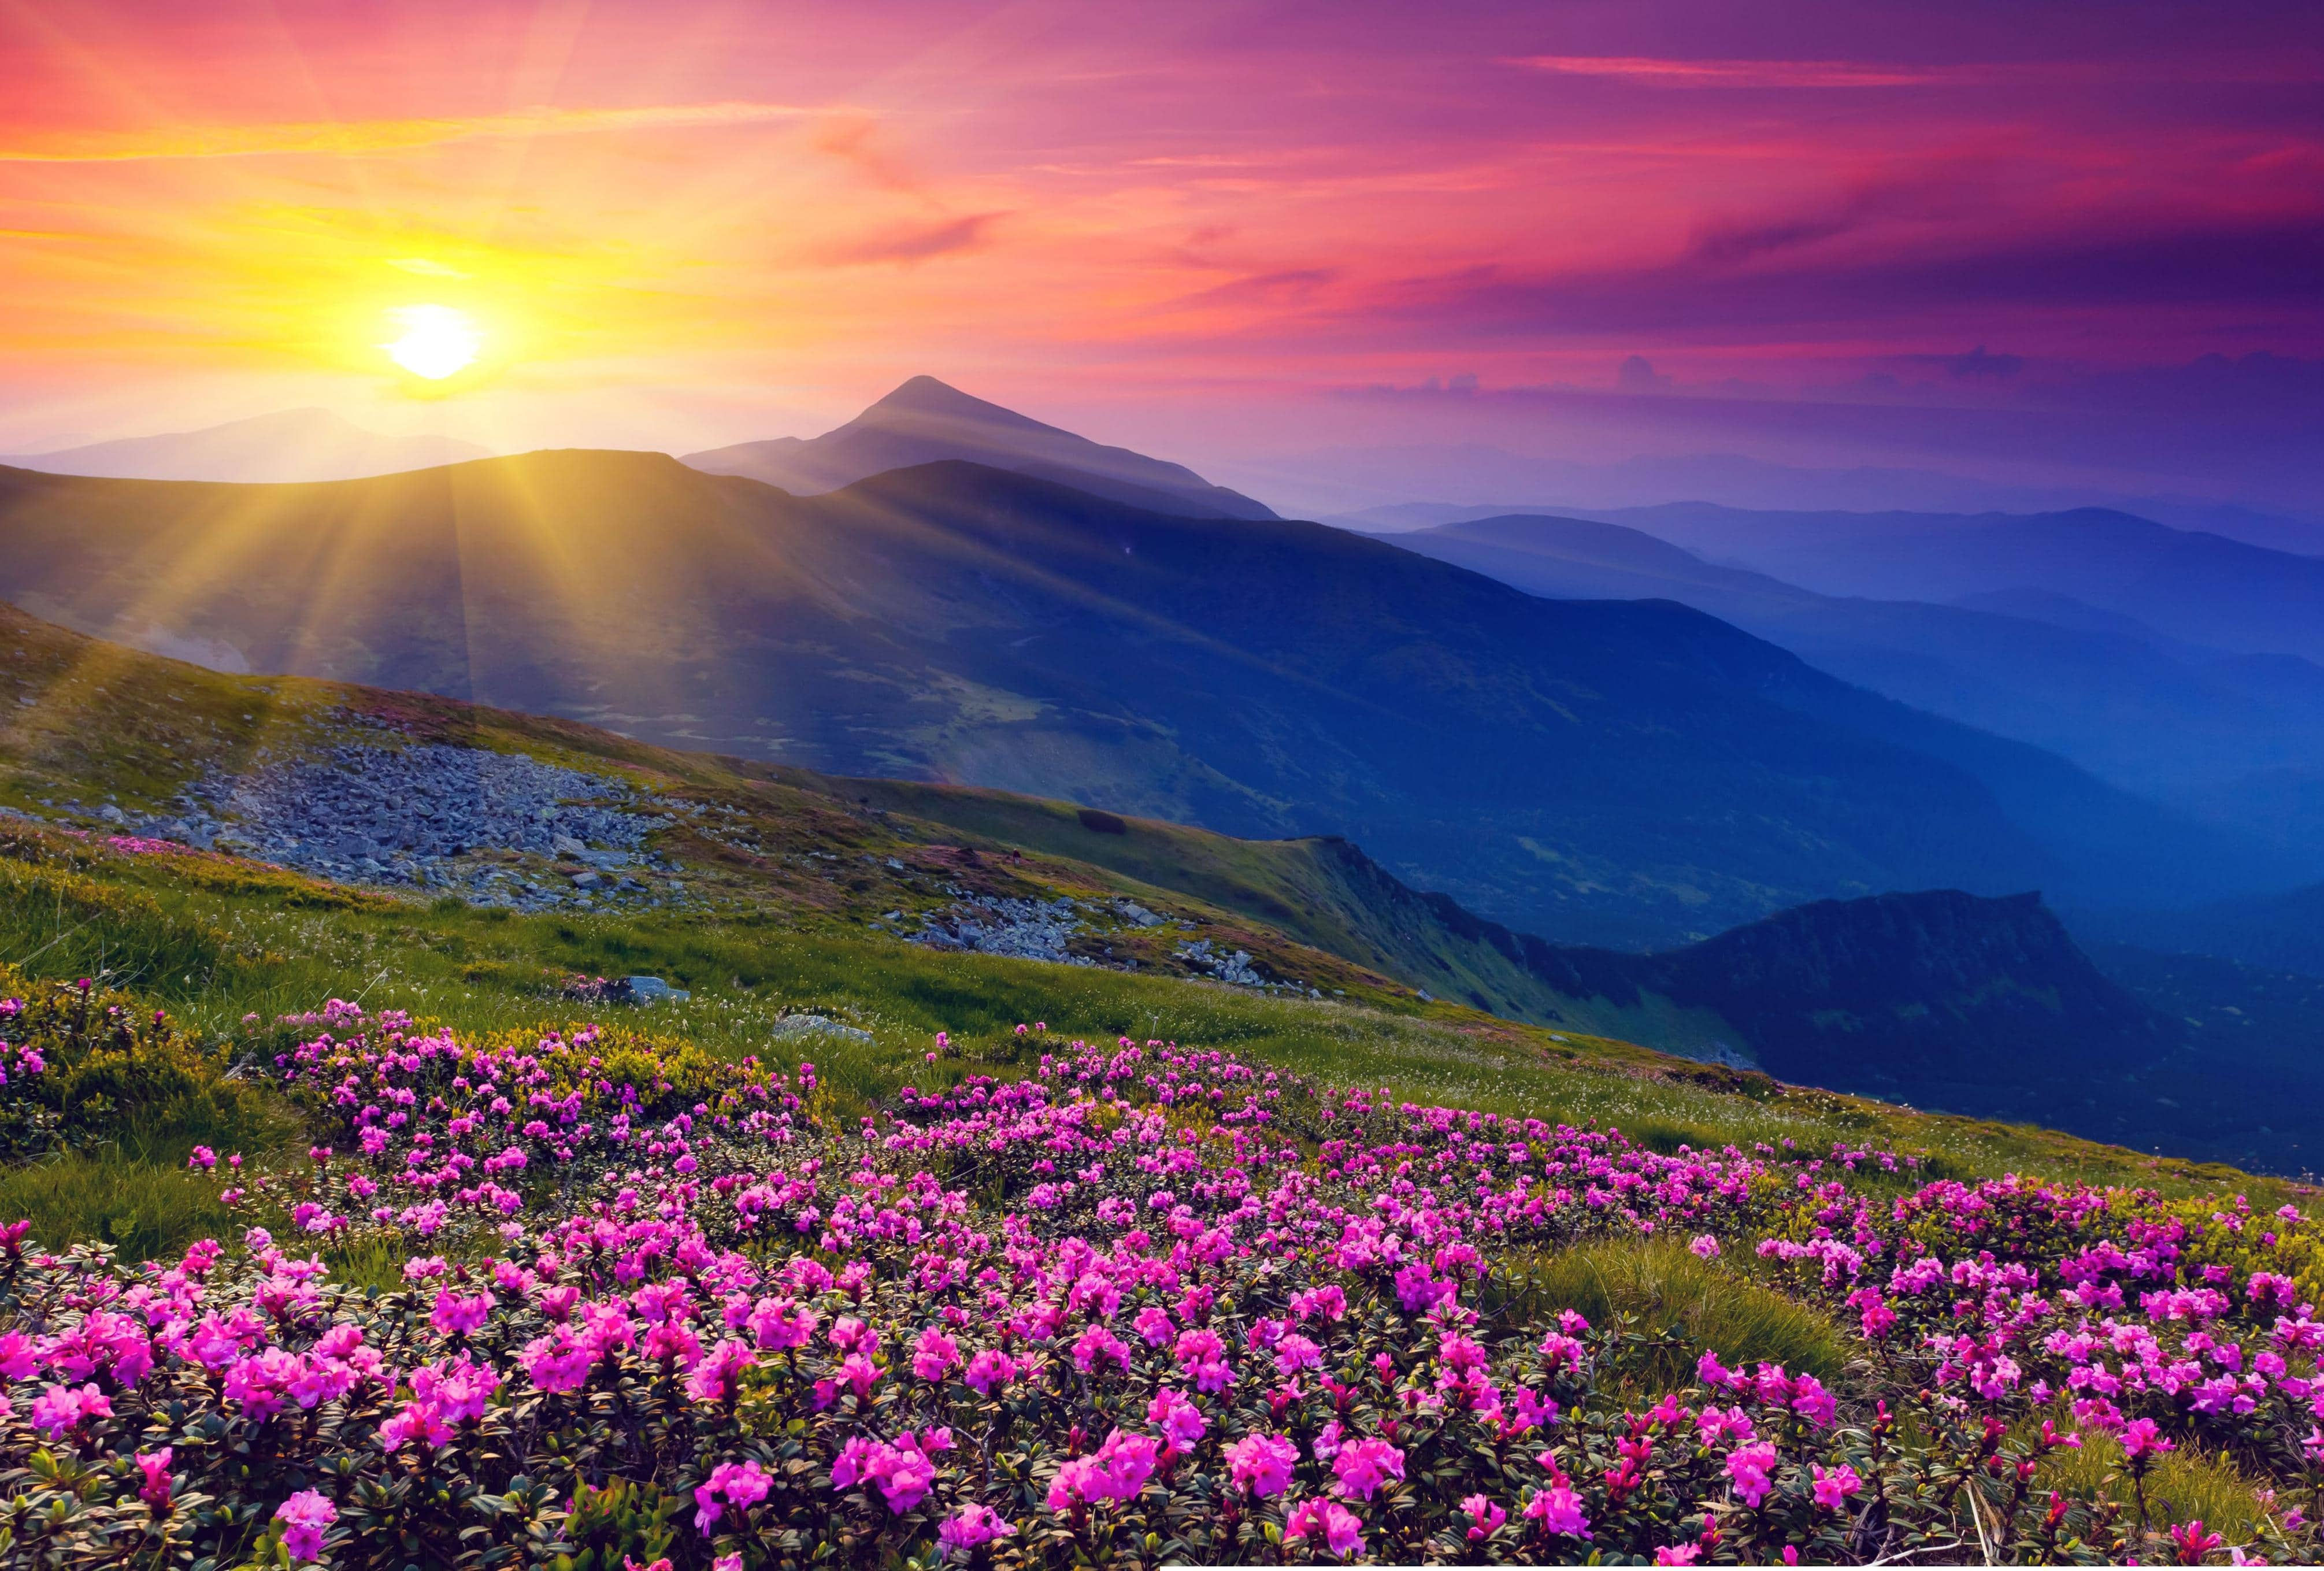 15 TECHNIQUES FOR GREAT SUMMER LANDSCAPES